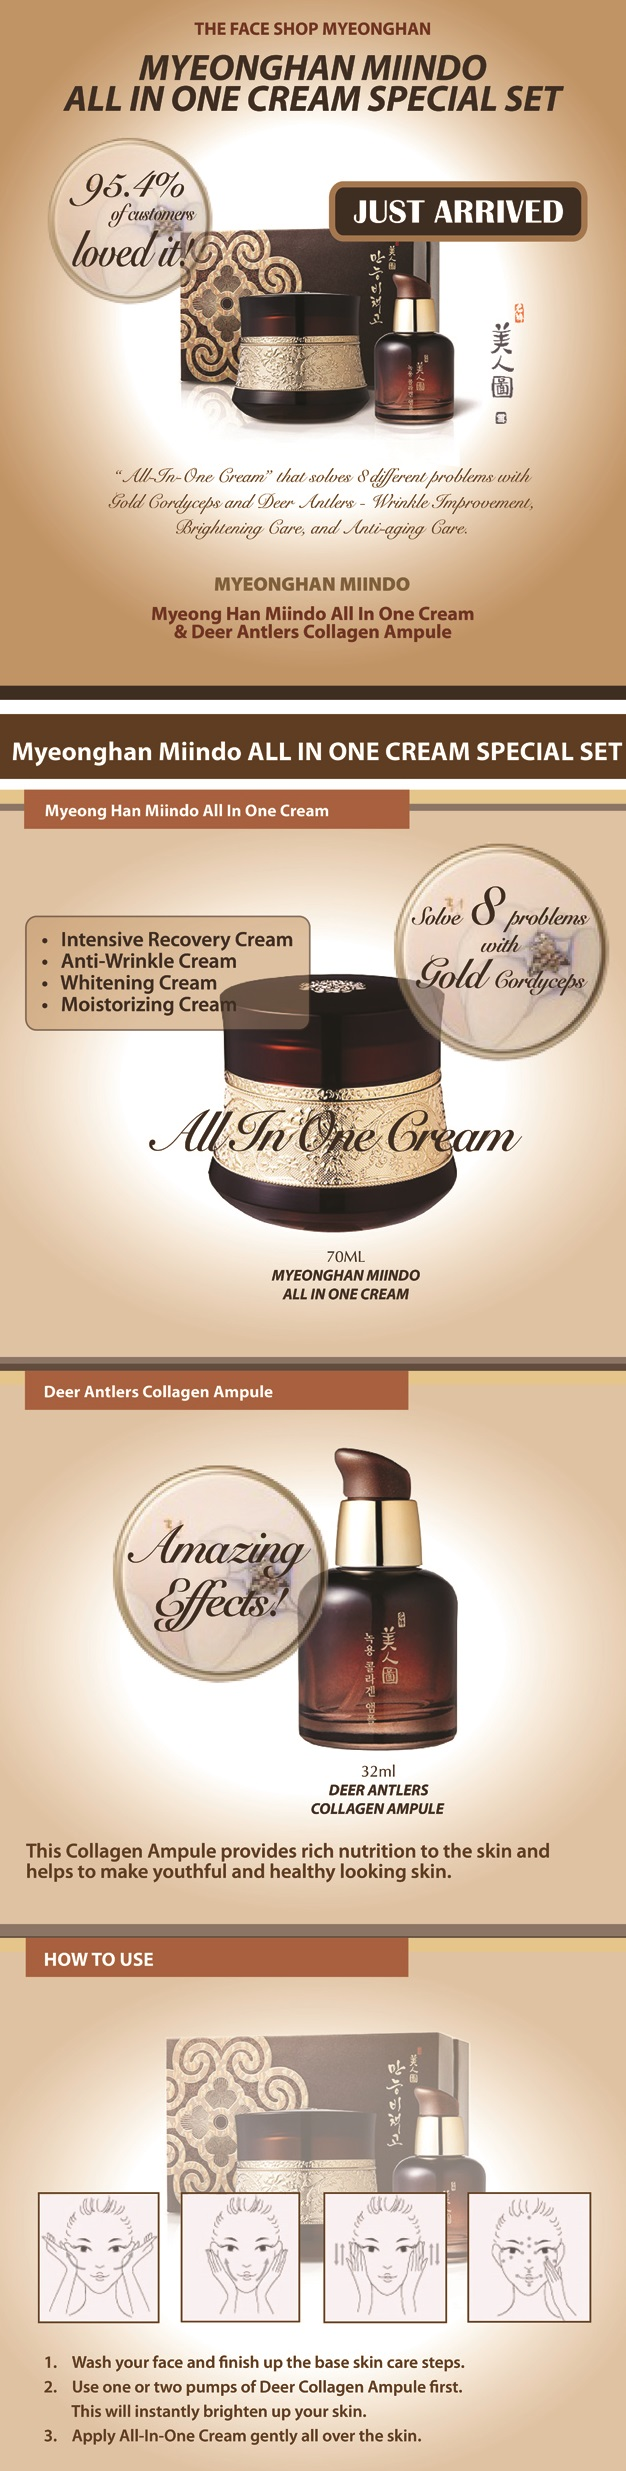 THE FACE SHOP Myeonghan Miindo All in one Cream Set - 70ml + 32ml